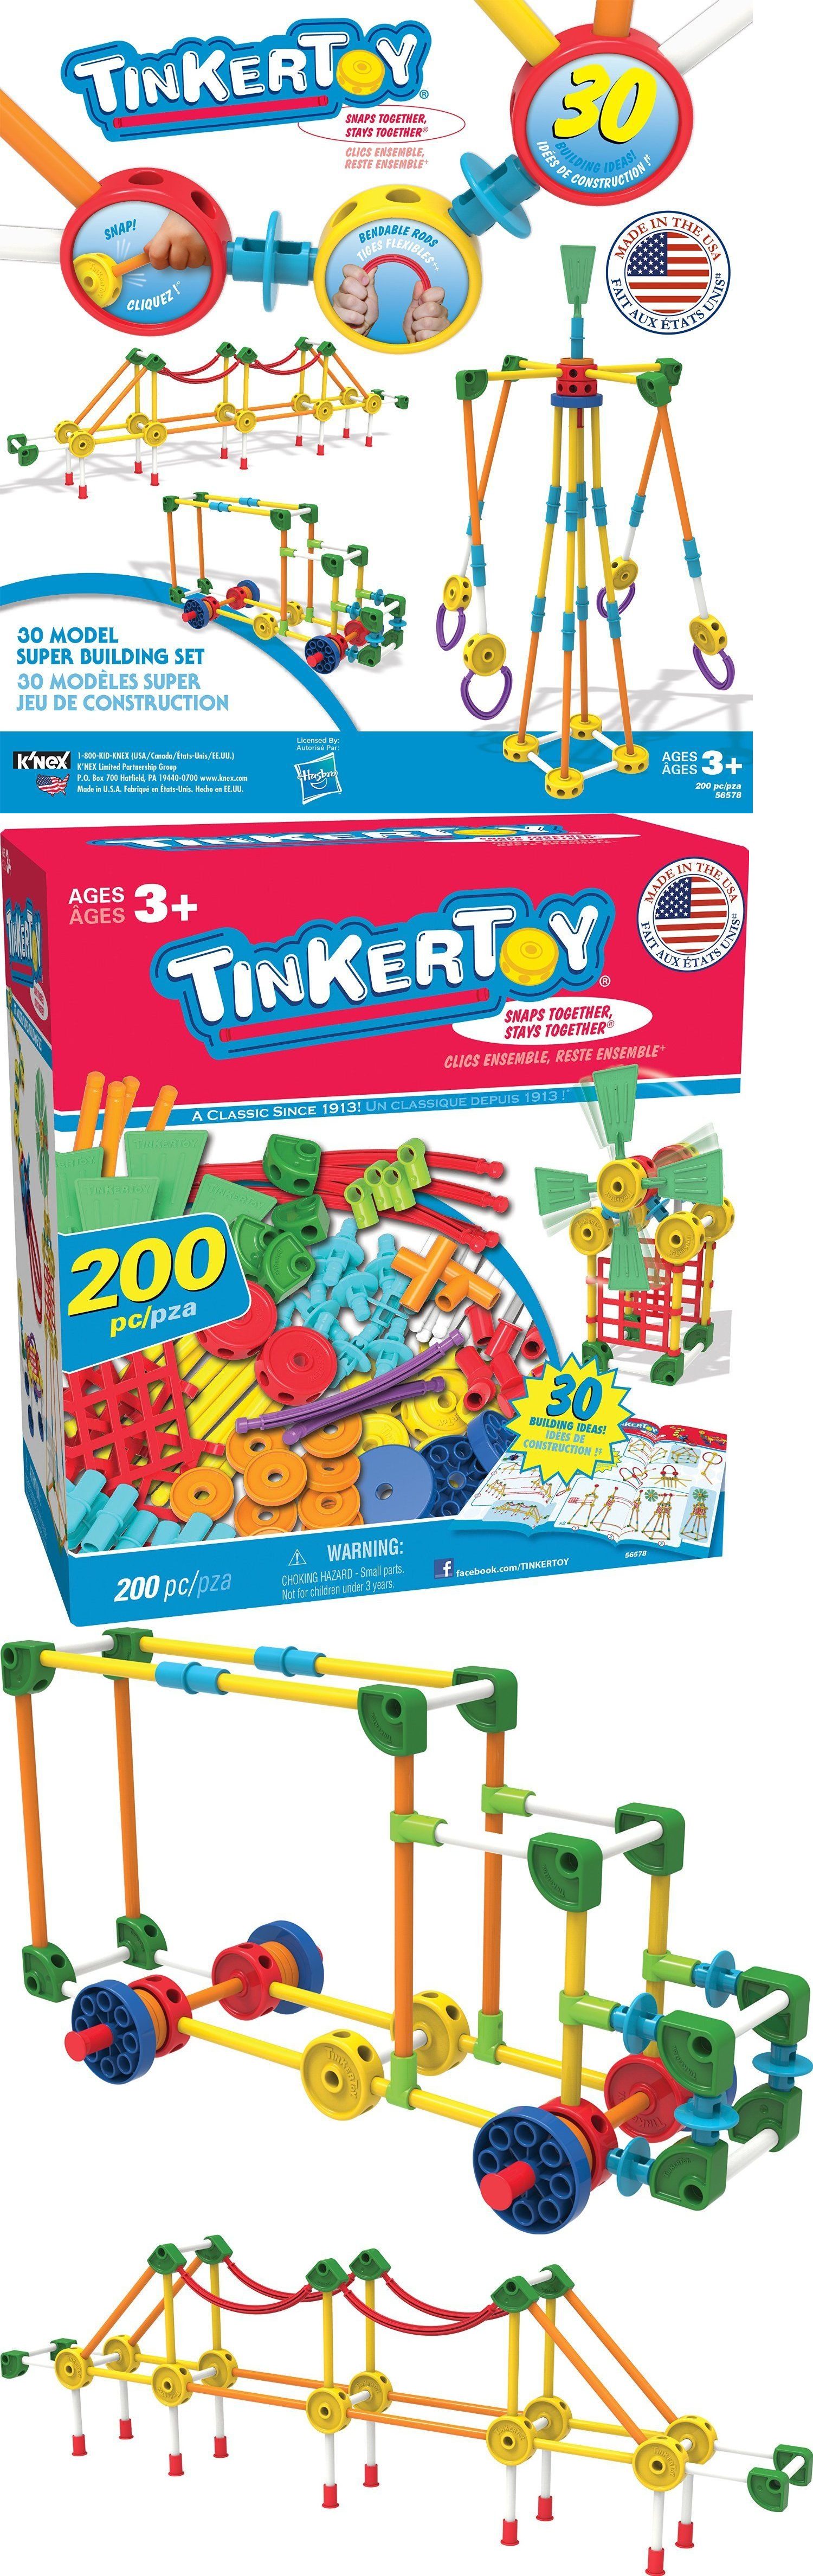 Tinkertoy Building Toys For 5 Year Olds Boys Toddlers Girls